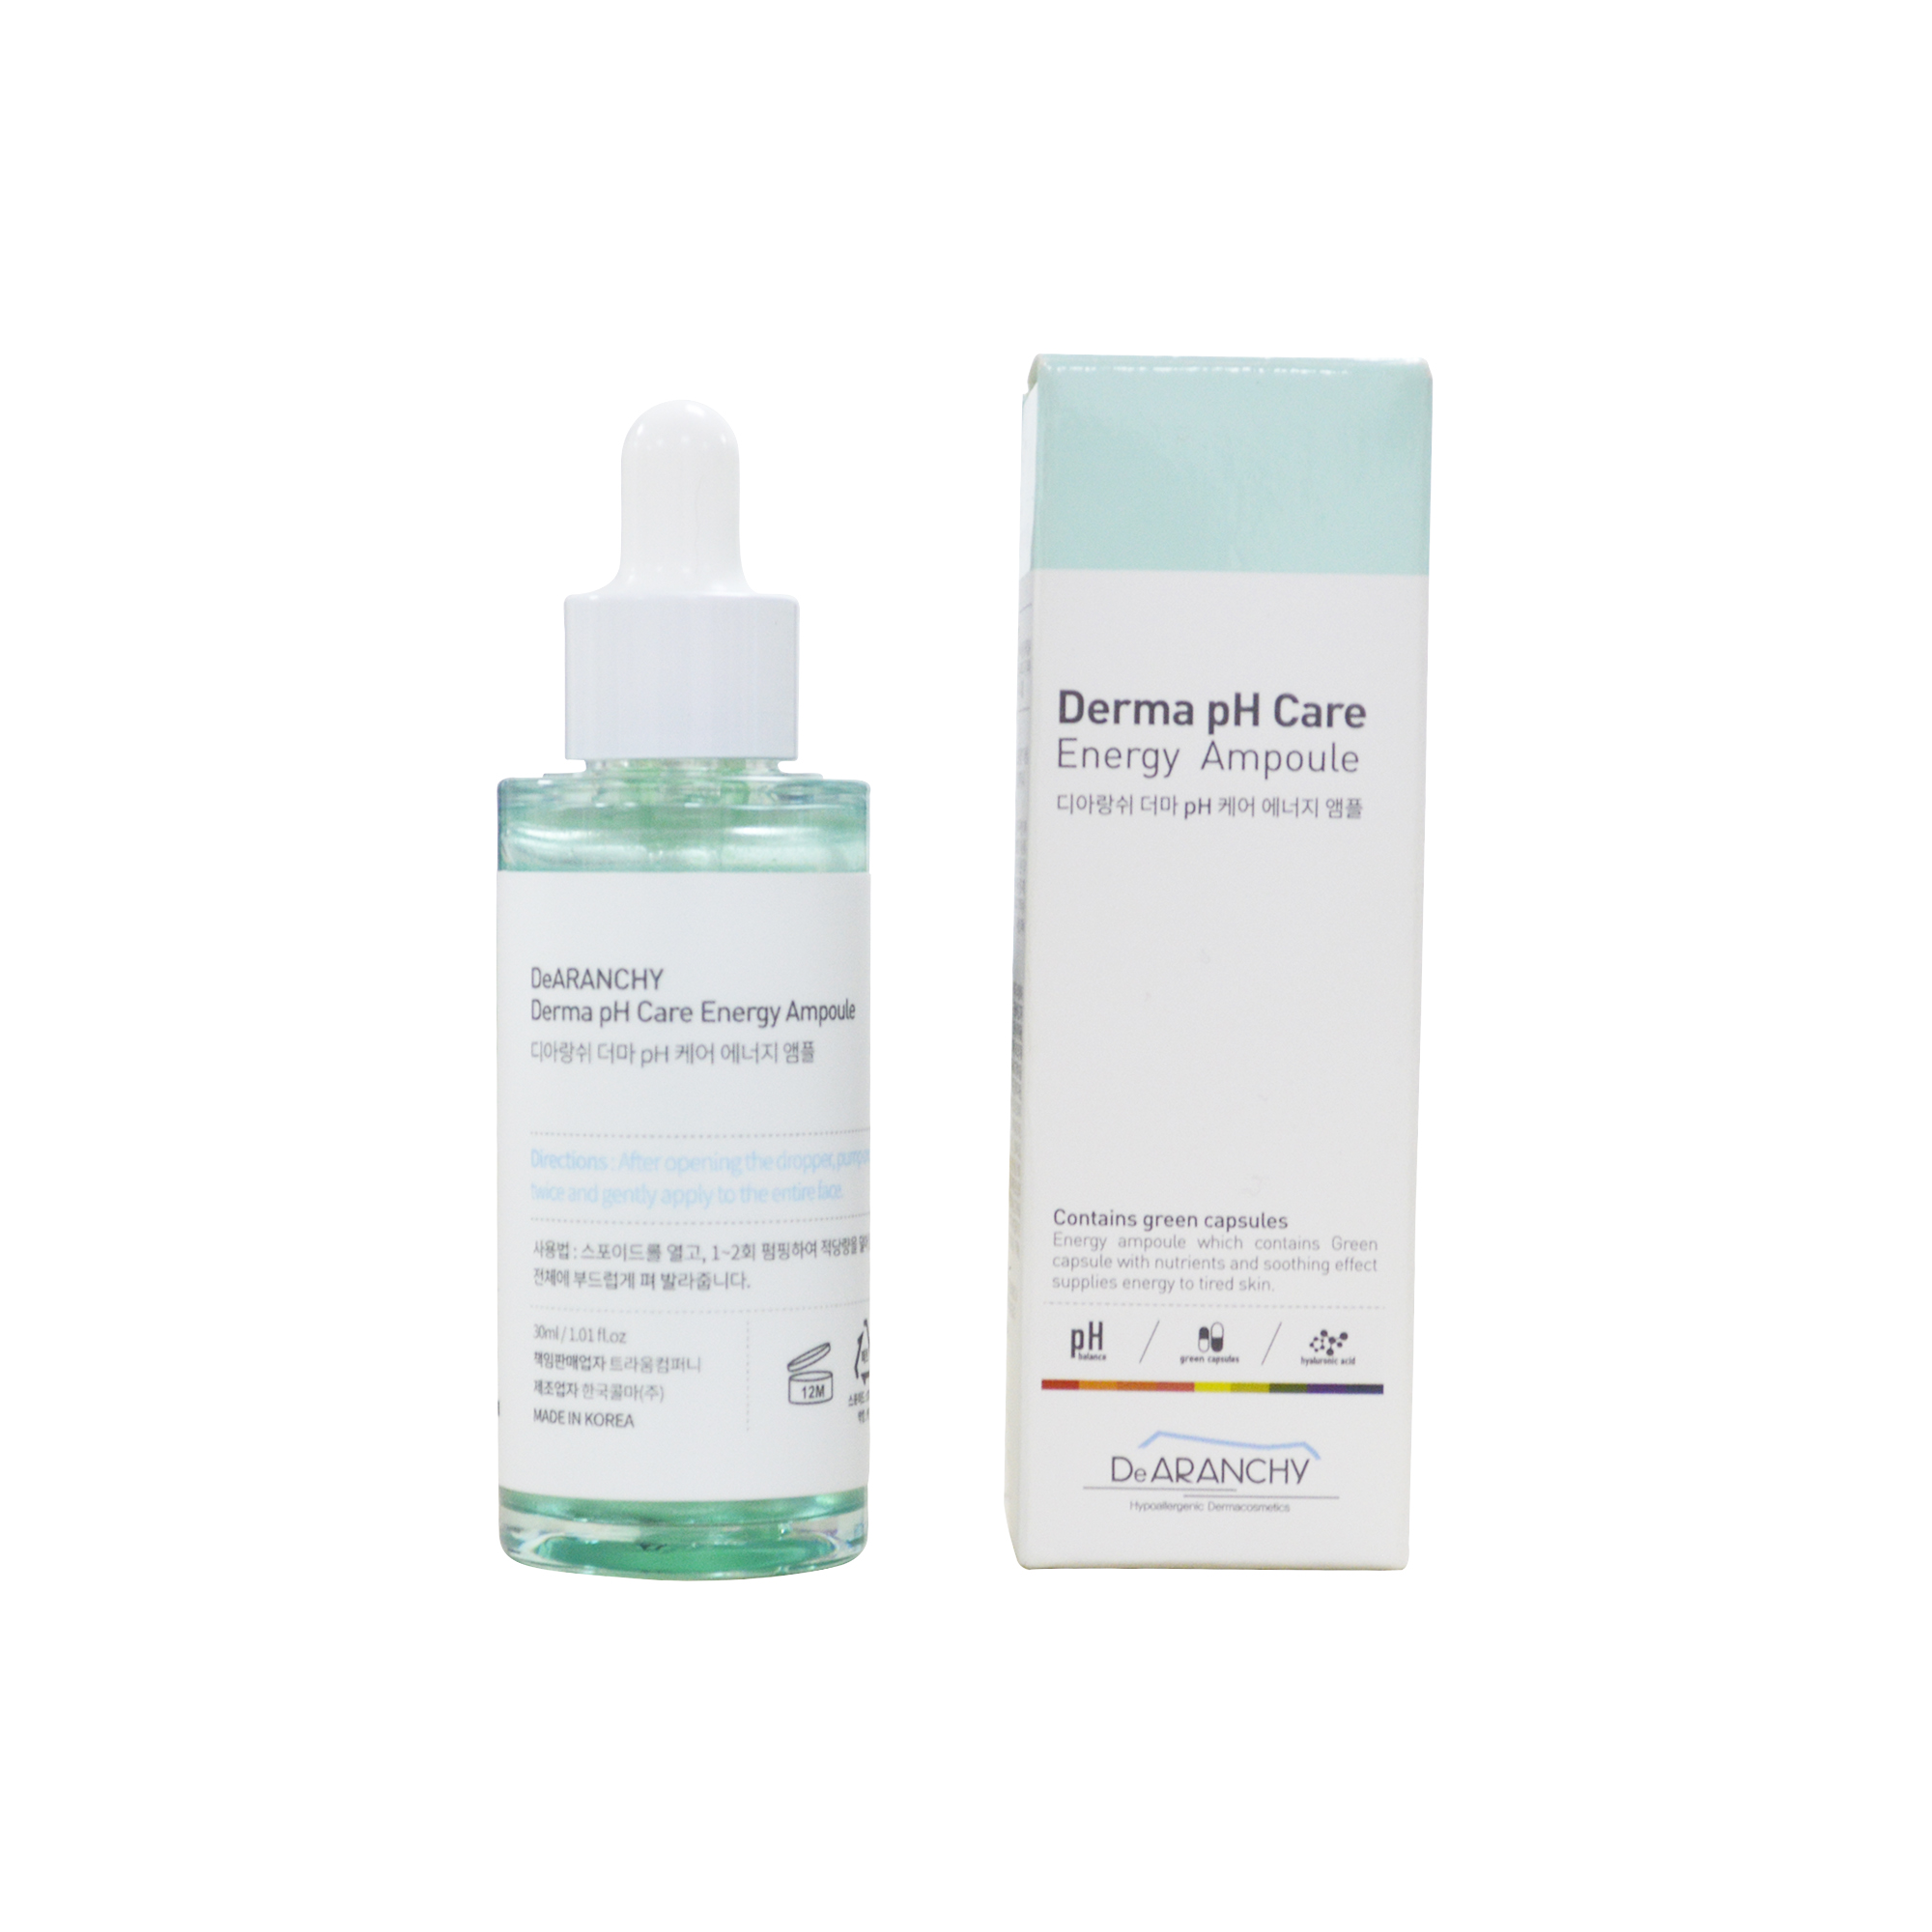 Tinh chất Dearanchy-Purifying Derma PH  Care Energy Ampoule